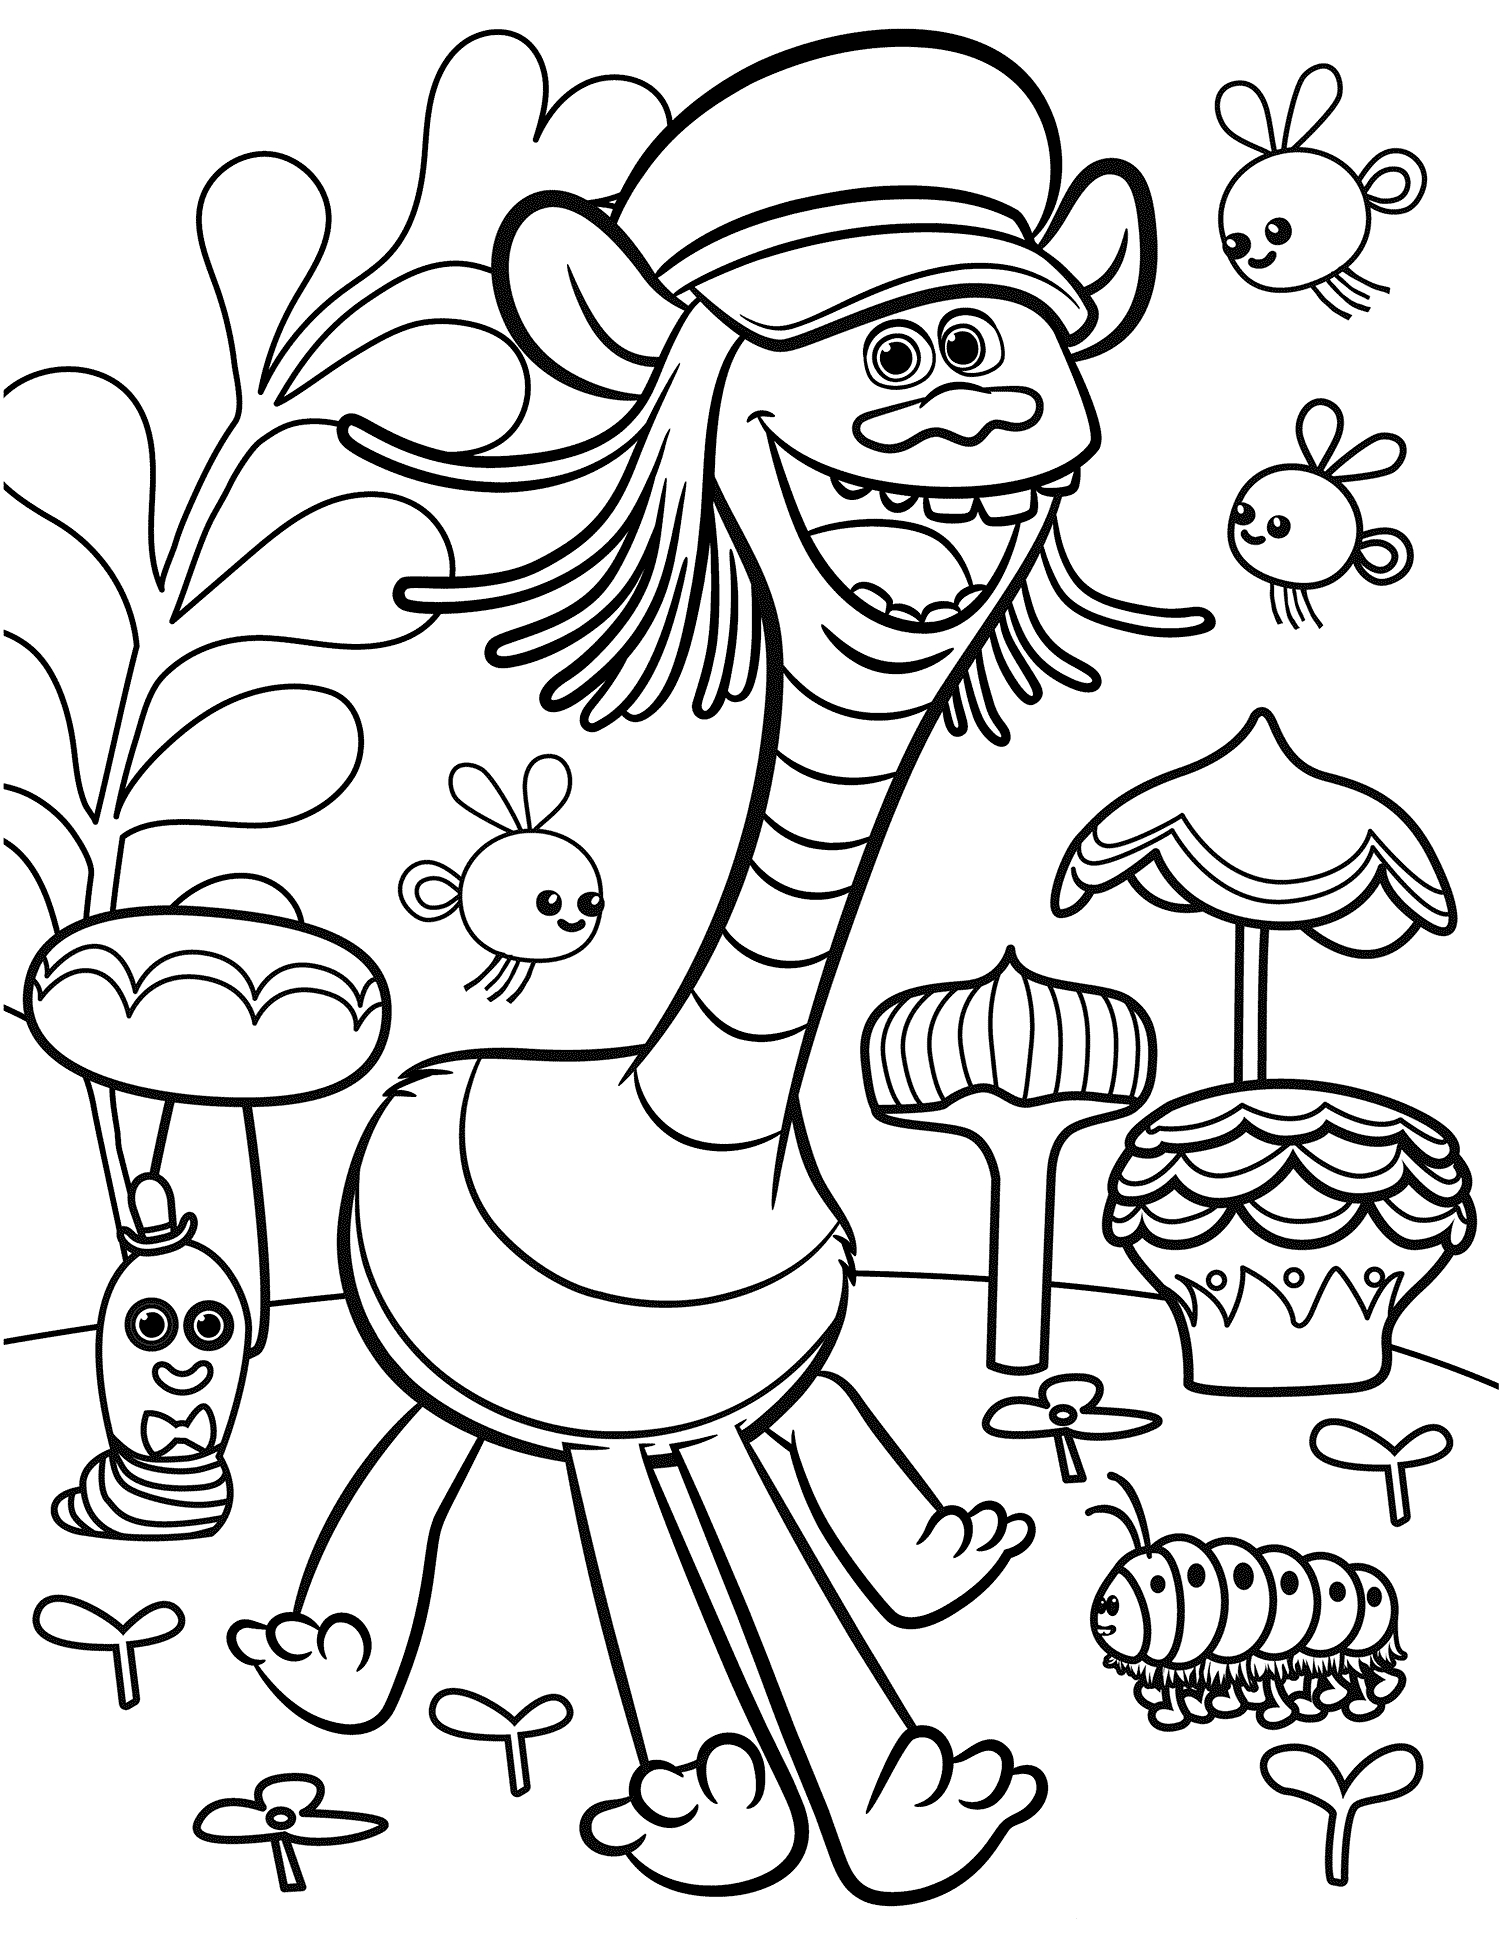 free downloadable coloring pages - free able coloring pages